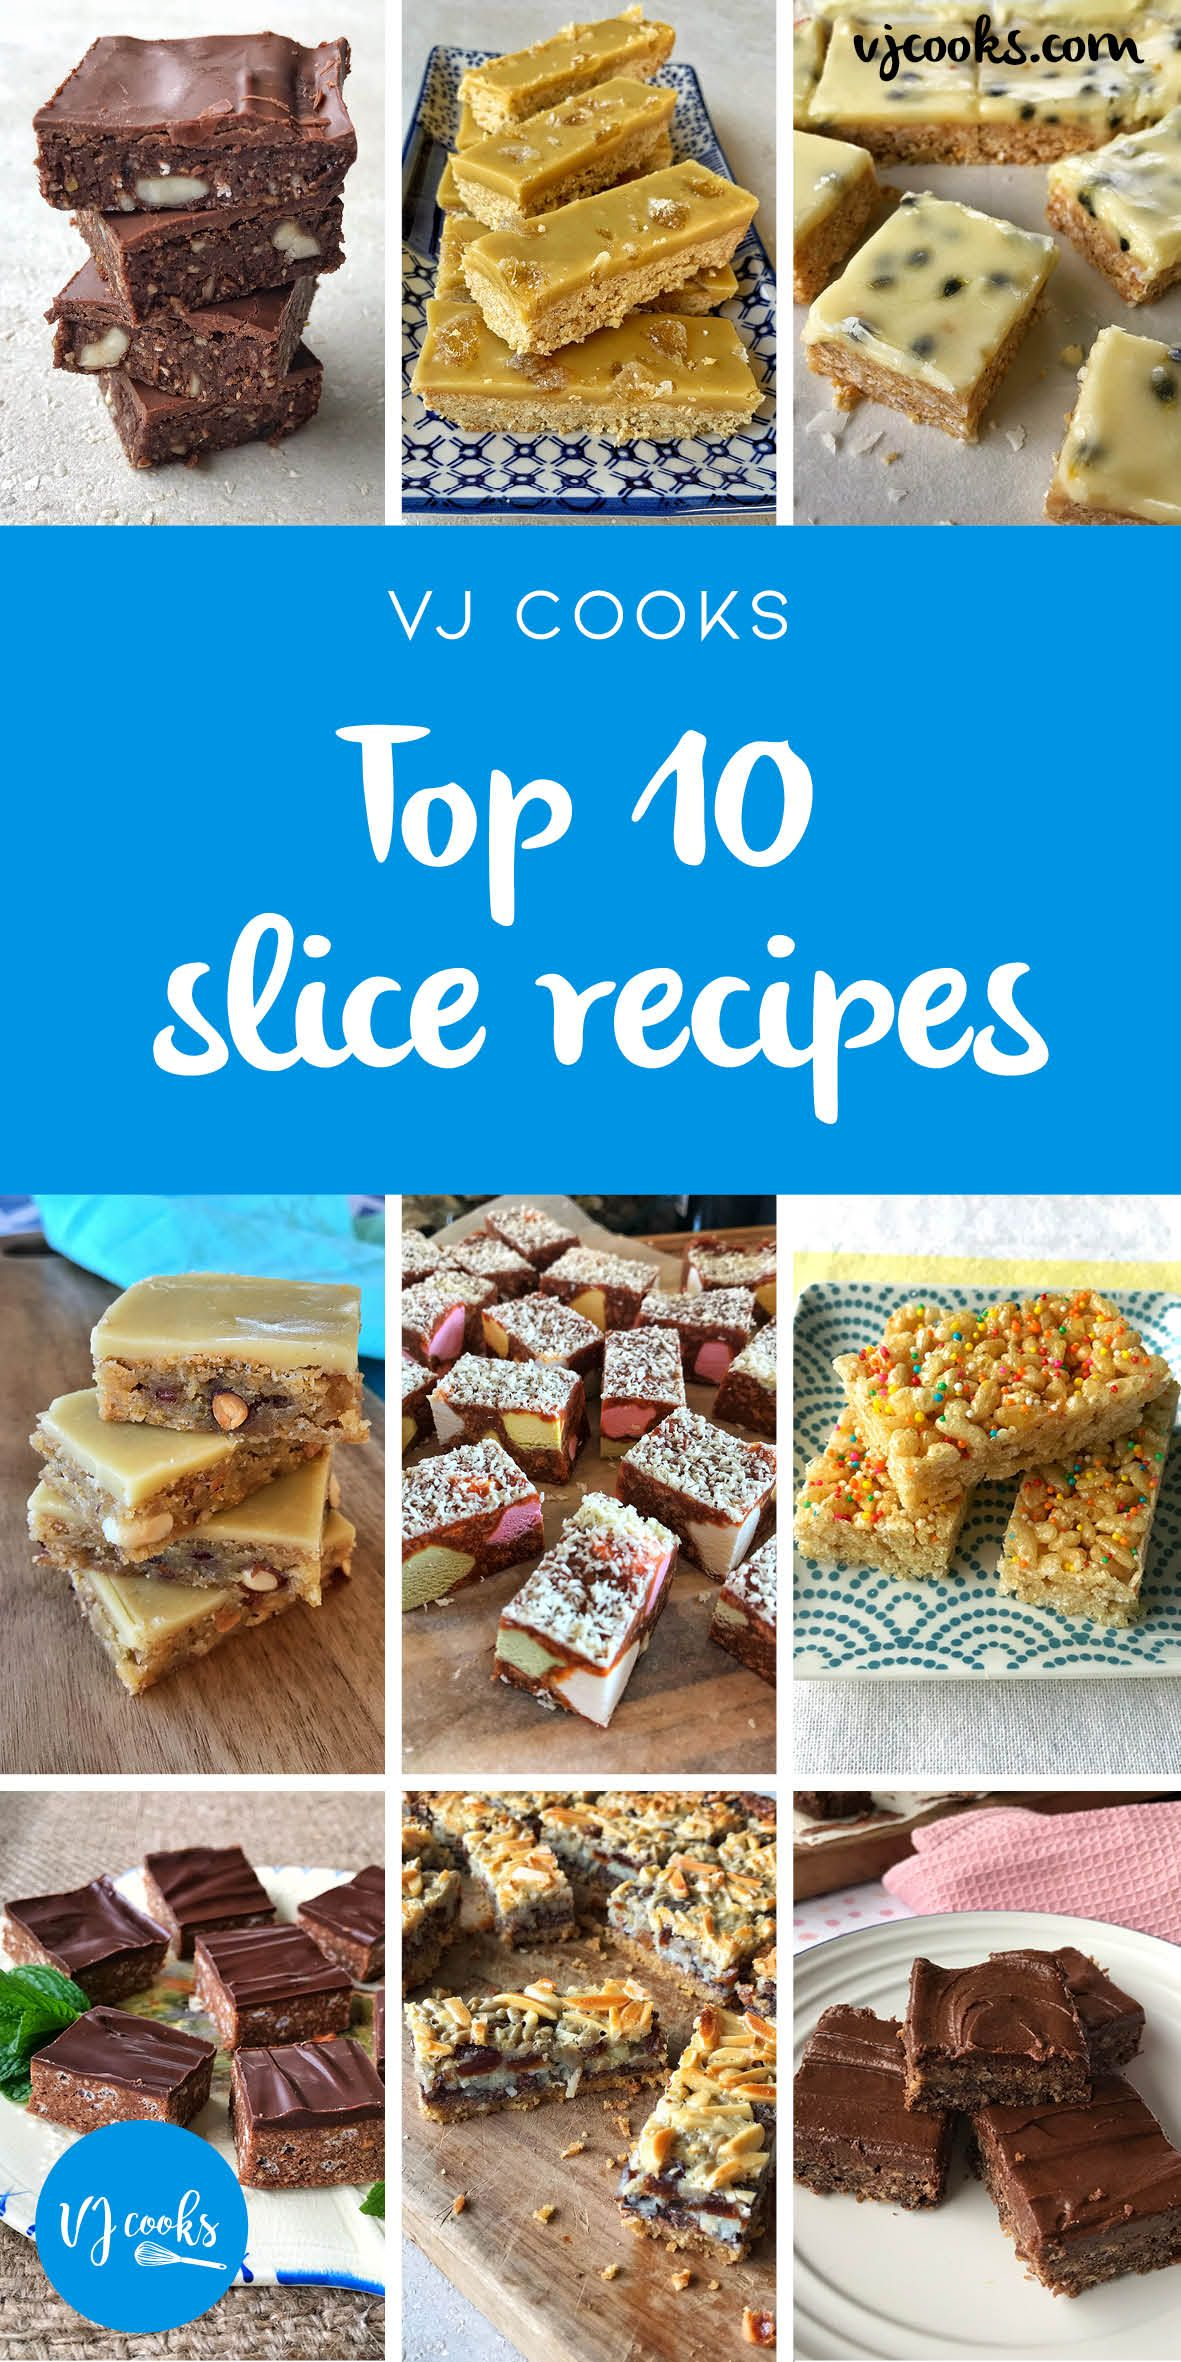 Top 10 Slice Recipes From Vj Cooks Slices Recipes Peppermint Slice Chocolate Slice